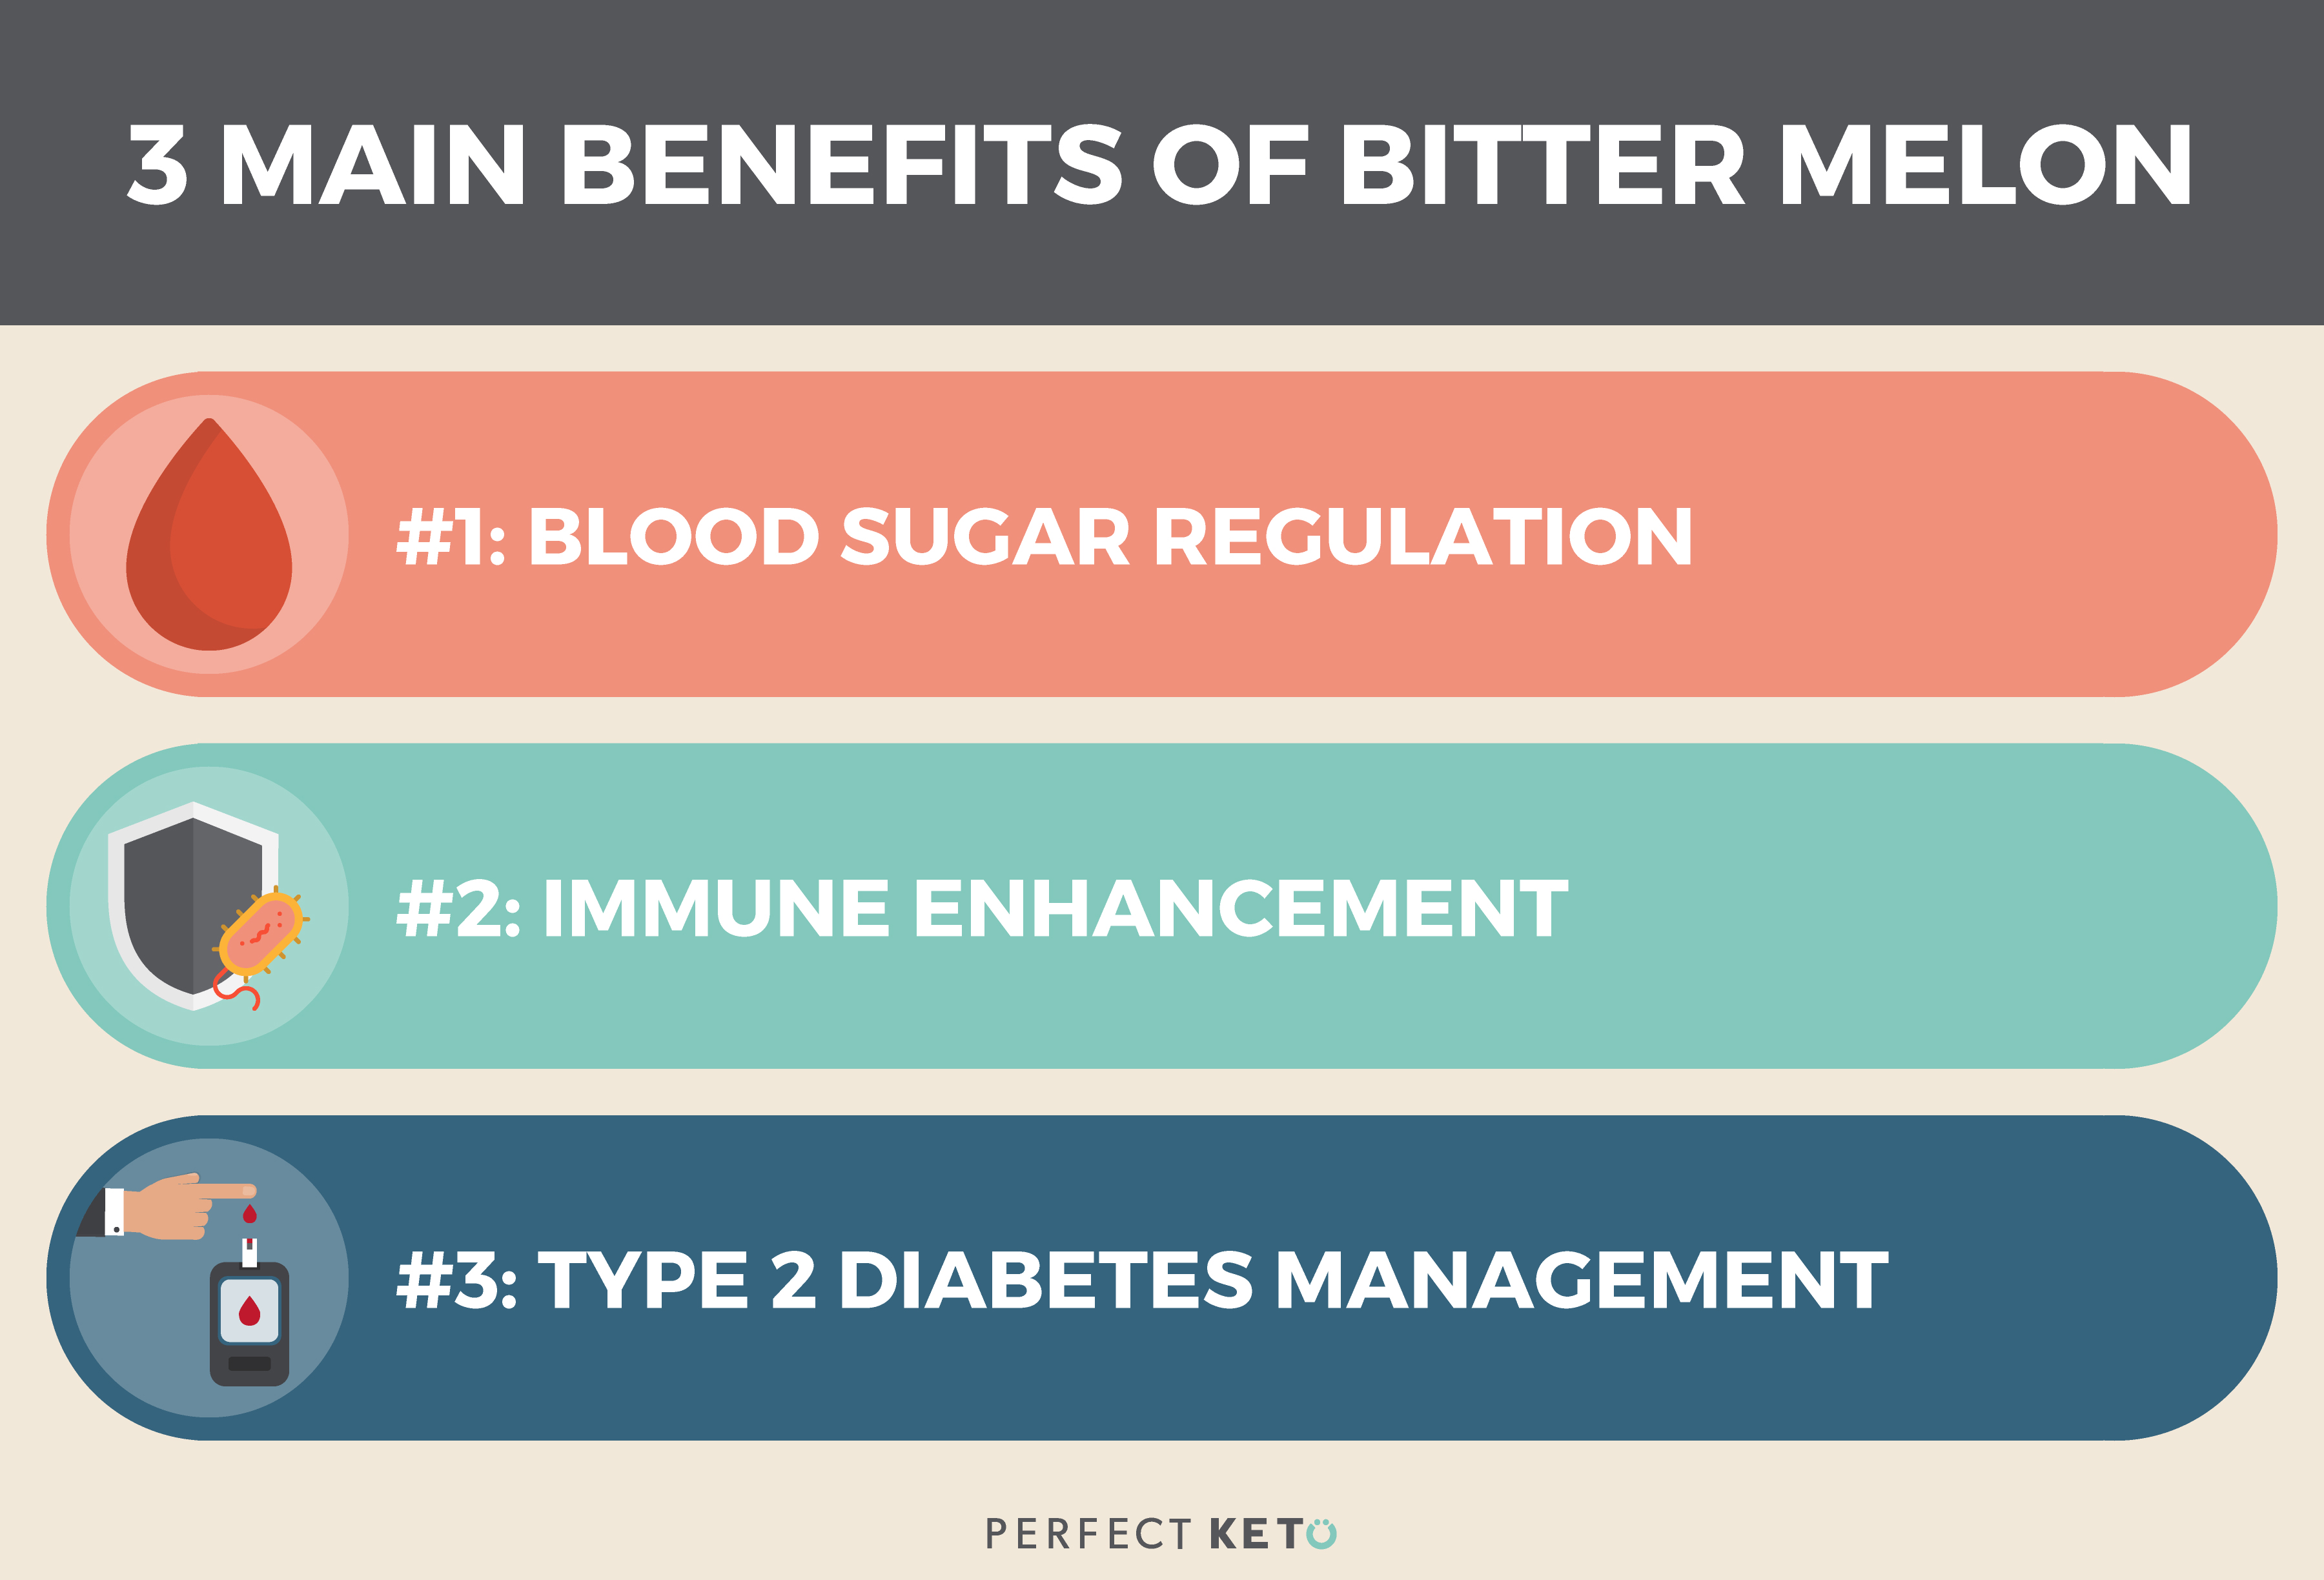 3-main-benefits-of-bitter-melon.jpg